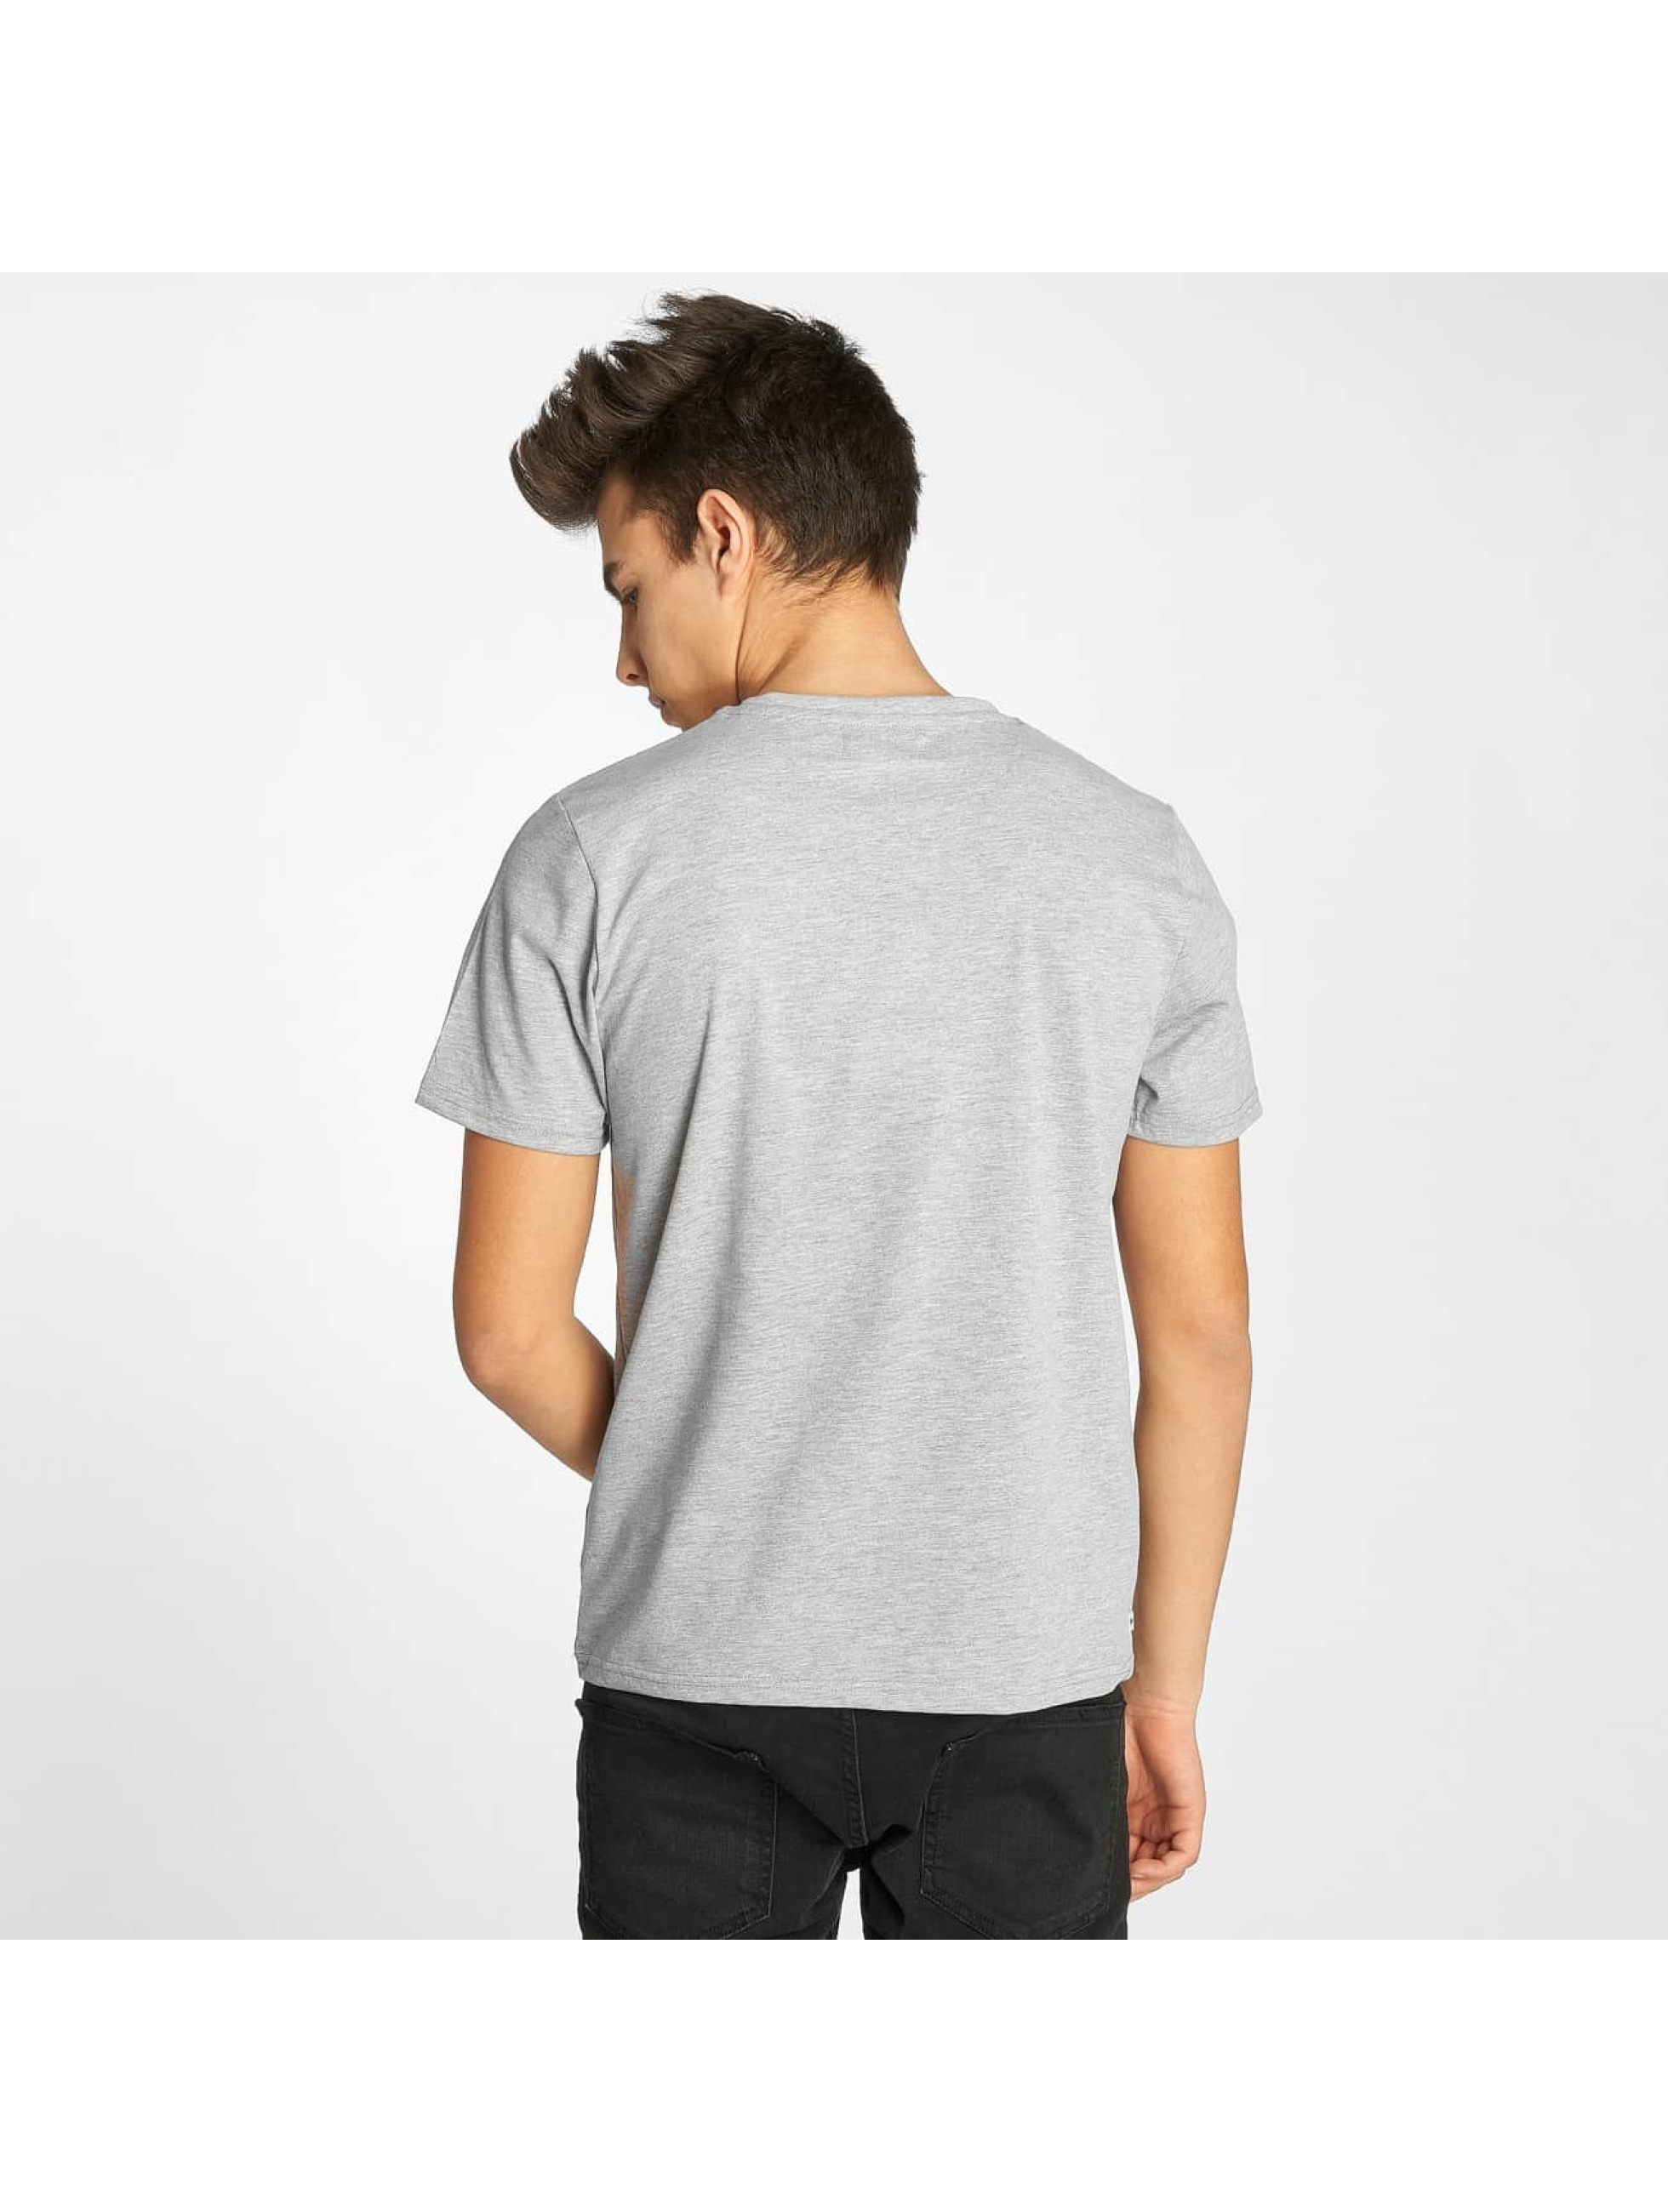 Kulte T-Shirt New York gray